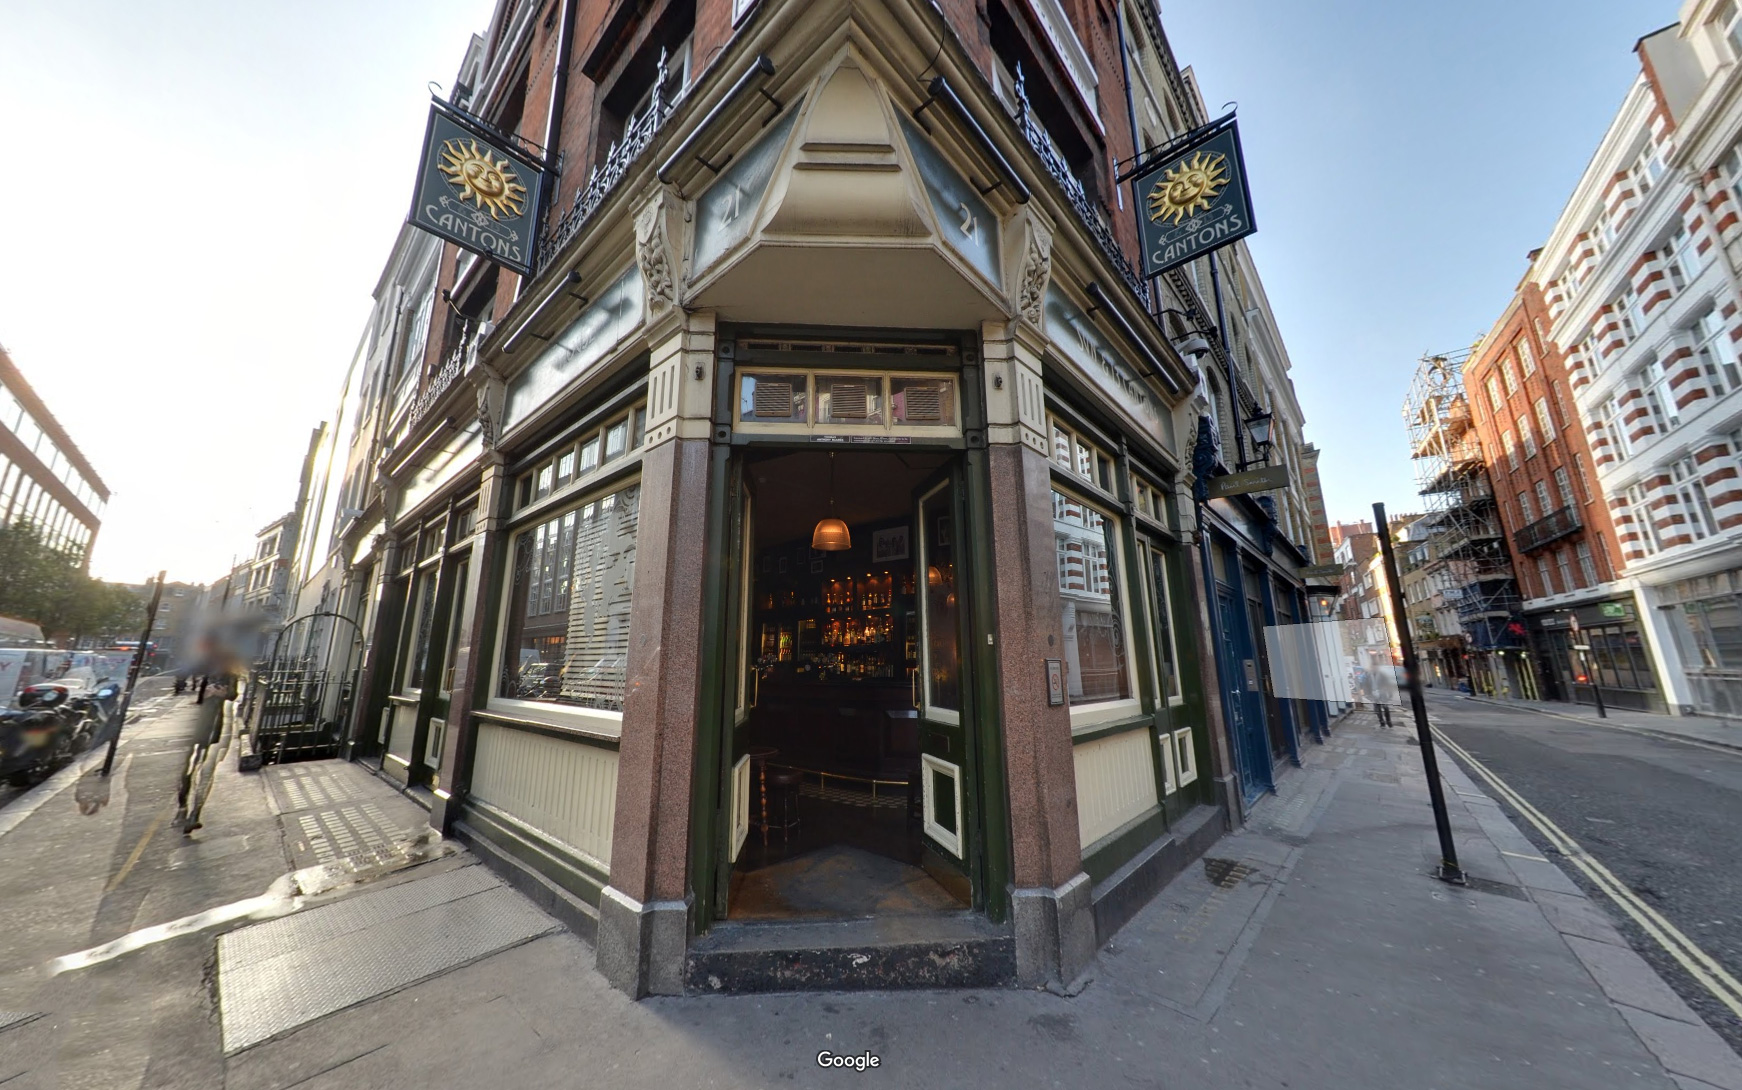 The Sun & 13 Cantons: the location of our second meetup.